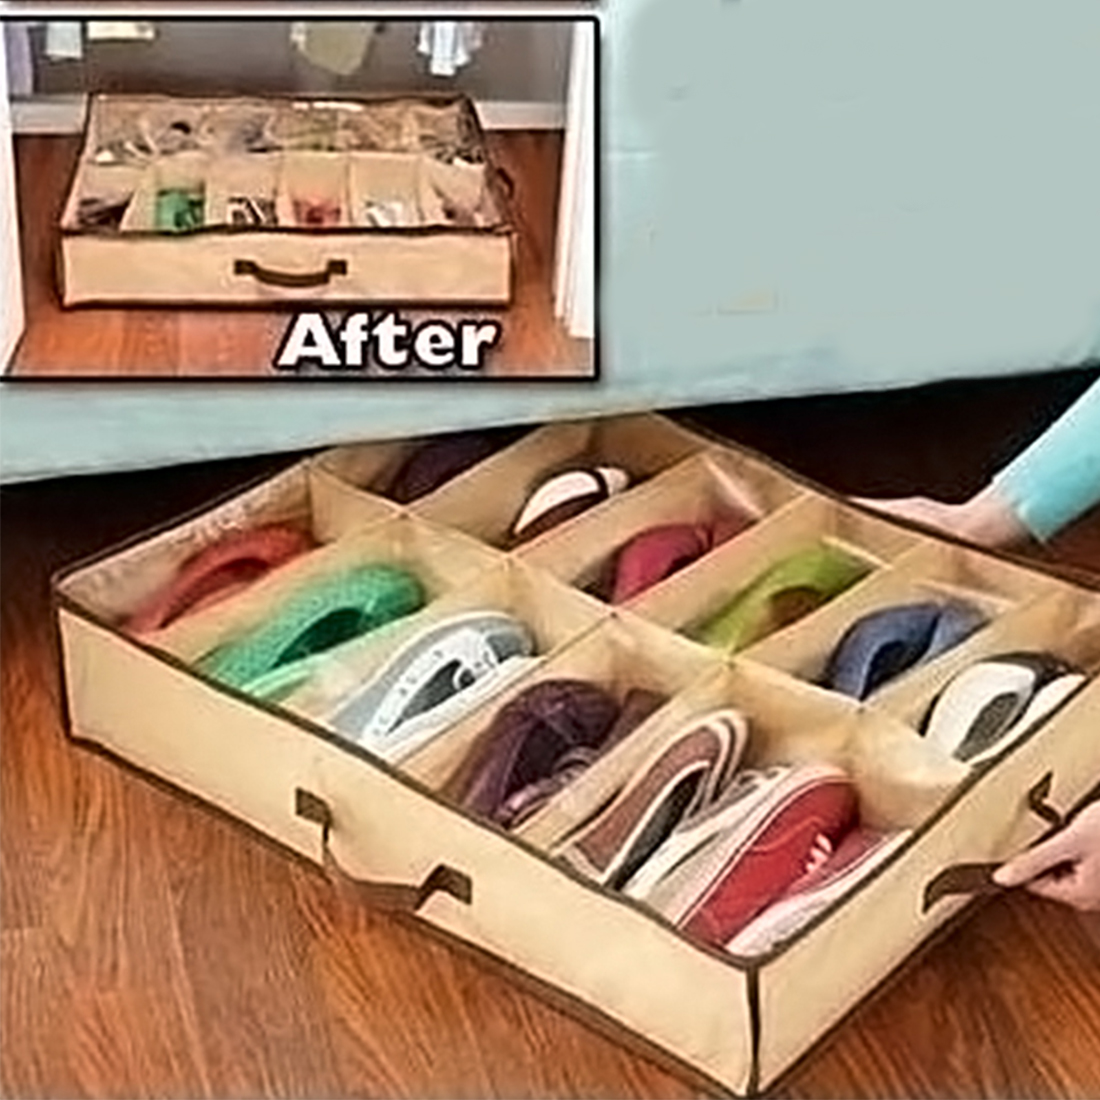 Transparent Nonwoven Creative Househ Shoe Cabinet Under Bed Closet Dust-proof 12 Cases Shoes Storage Organizer Holder Bag Box